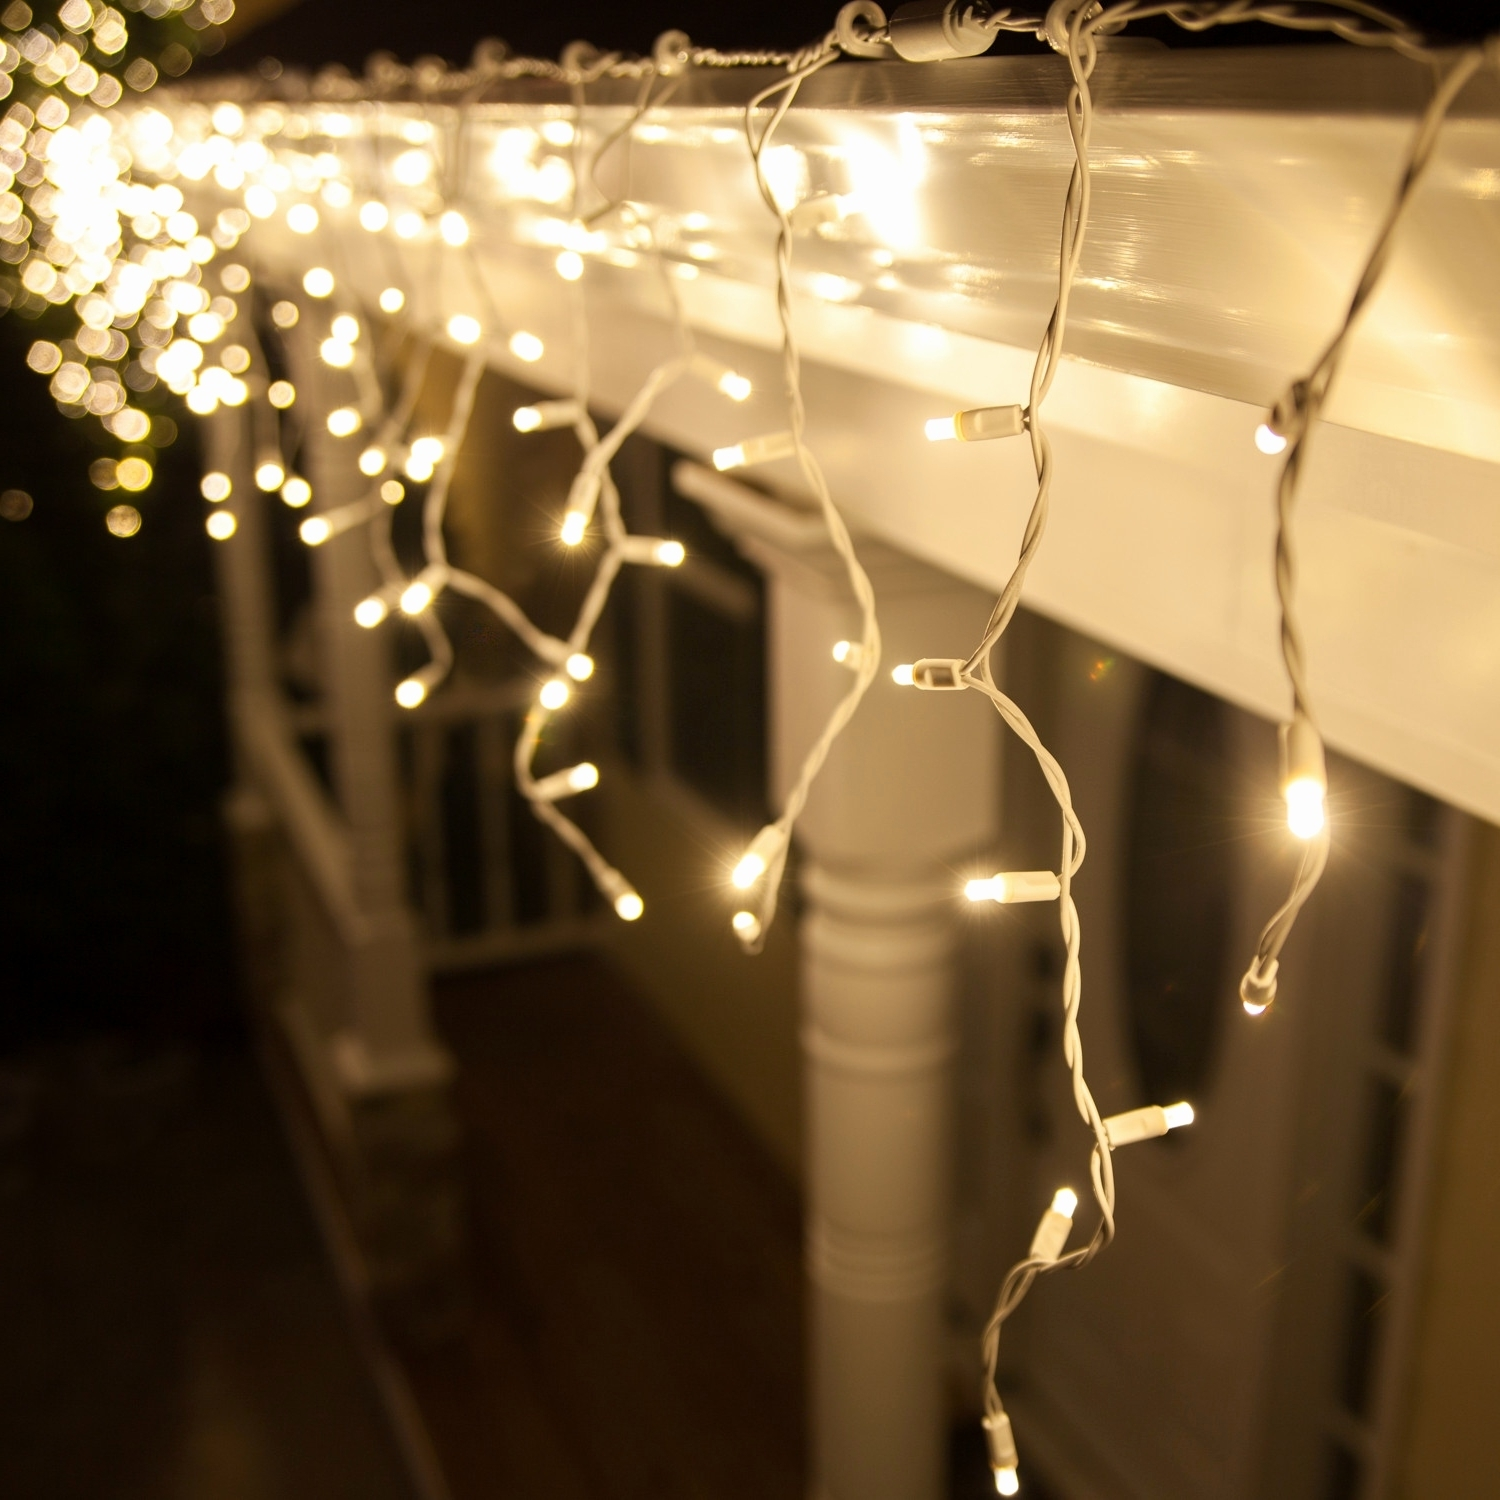 Outdoor Hanging Icicle Lights Pertaining To Most Up To Date Best Of How To Hang Outdoor Christmas Lights Images – Home Design (View 15 of 20)